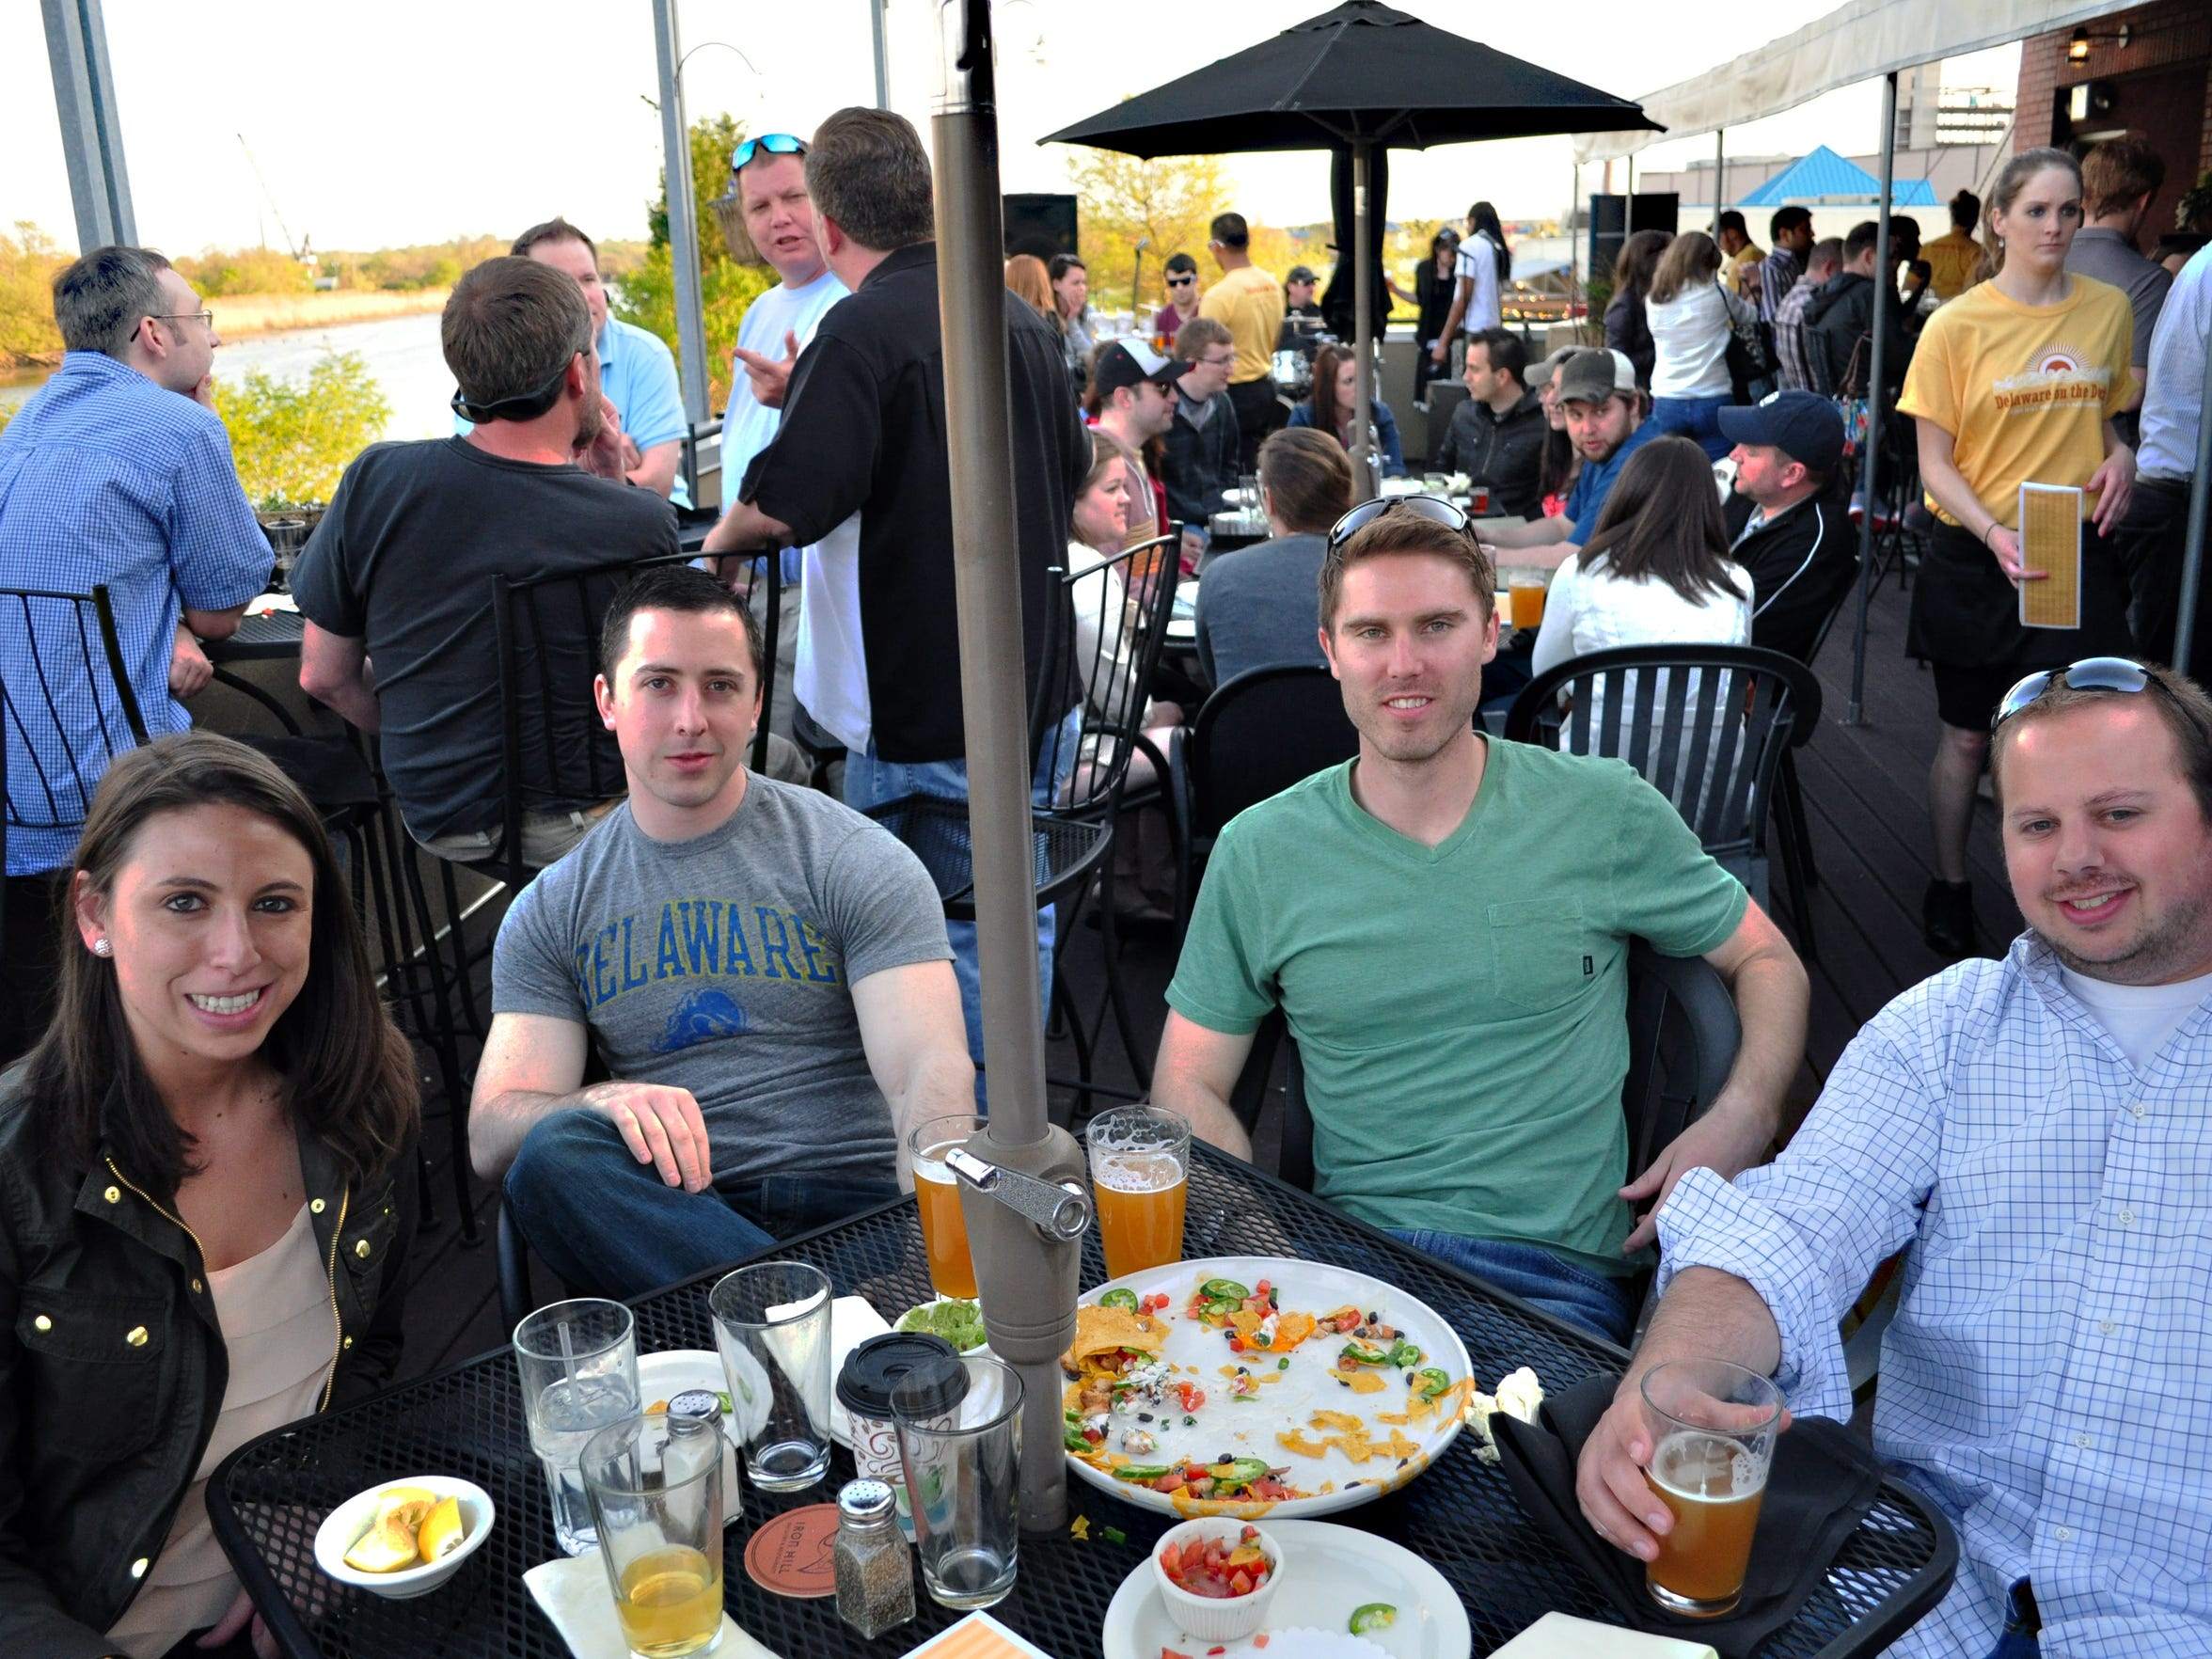 Iron Hill Wilmington will welcome breweries and beer fans from around the state for its Delaware on the Deck beer fest on Saturday.